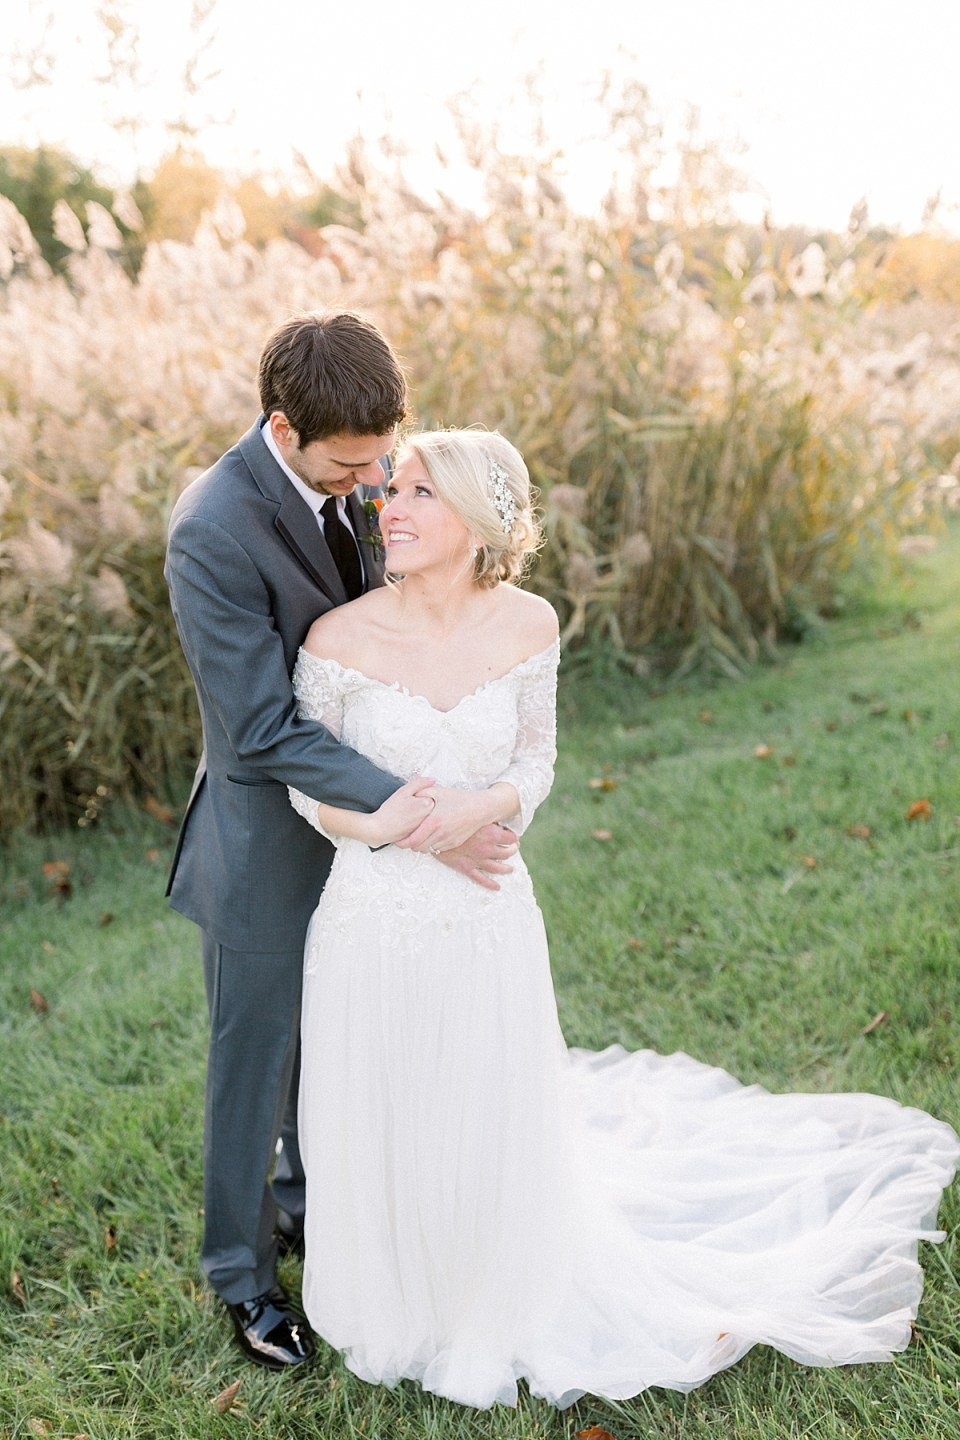 Arielle Peters Photography | Bride and groom smiling at each other outside in a field on fall wedding day.